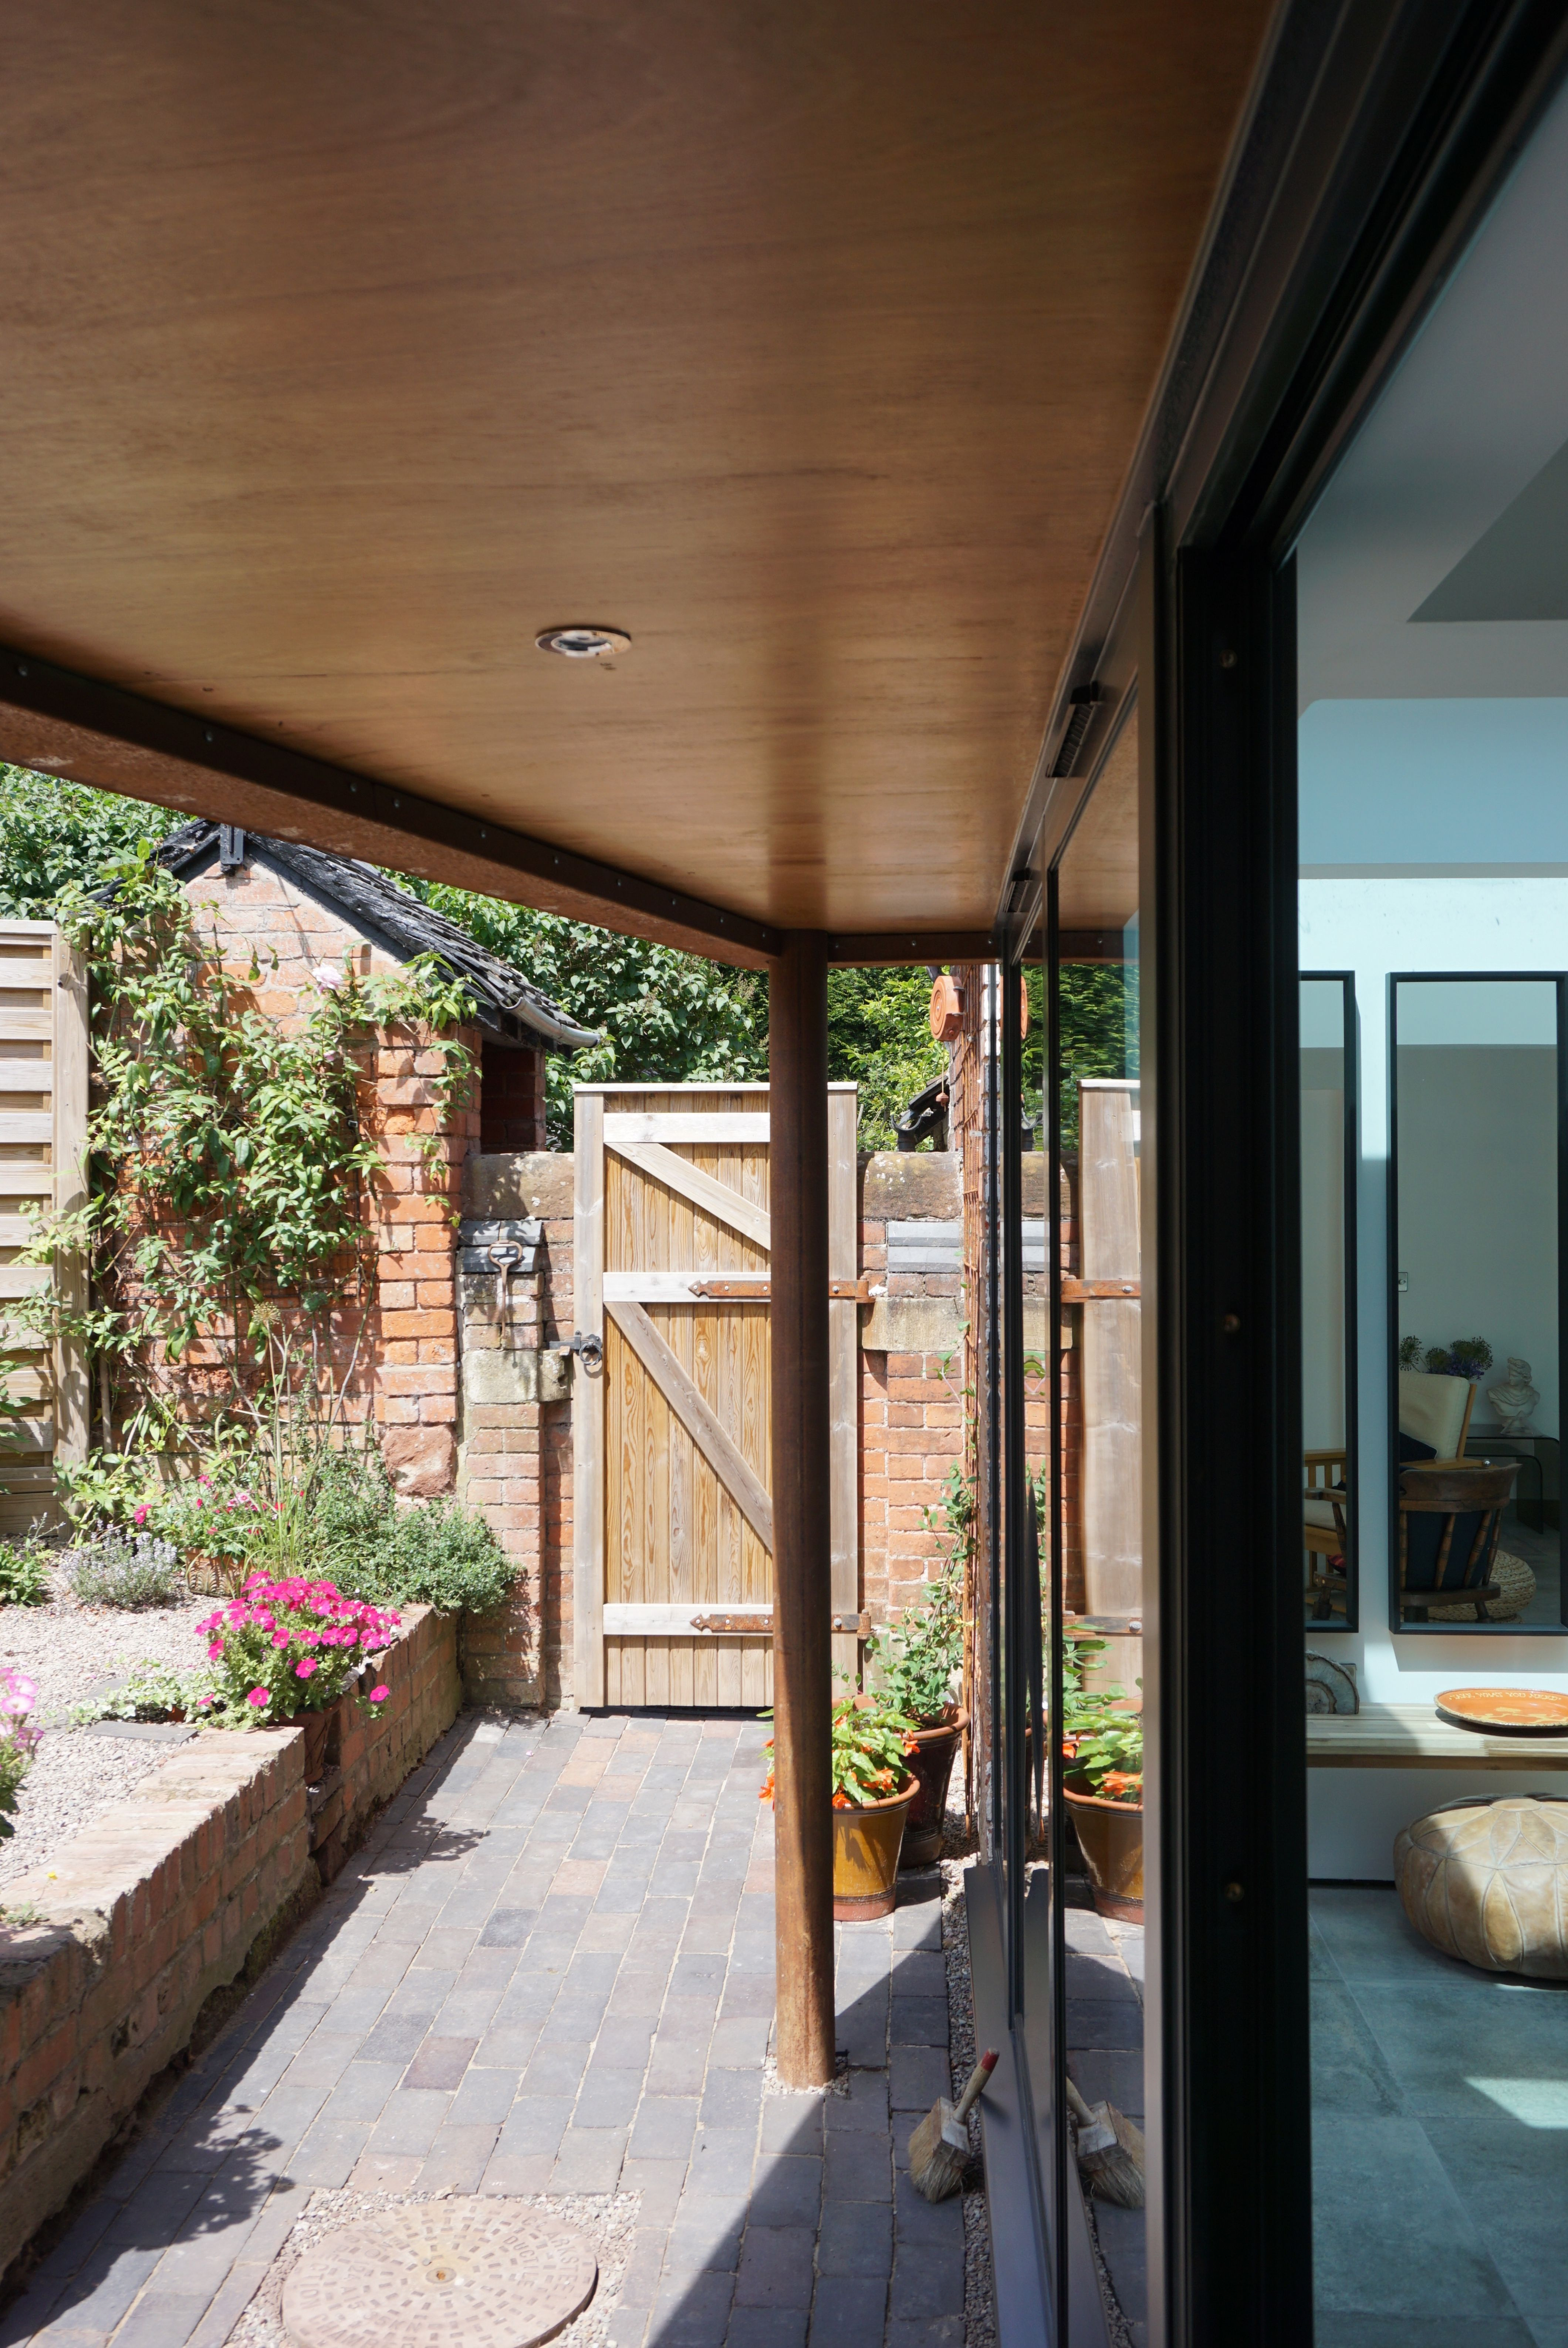 Our 'Corten Extension' project in #MarketDrayton created a new open plan kitchen-diner as part of a side-return and rear single storey build to a Victorian terrace. The Corten blends in beautifully with the existing brick whilst the plan form kicks out towards the garden to create a small sheltered seating area. . #shropshire #formformarchitects #architecture #interiordesign #smallproject  #houseextension #sidereturn #dontmoveimprove #refurbish #remodel #kitchendiner #corten #rooflight